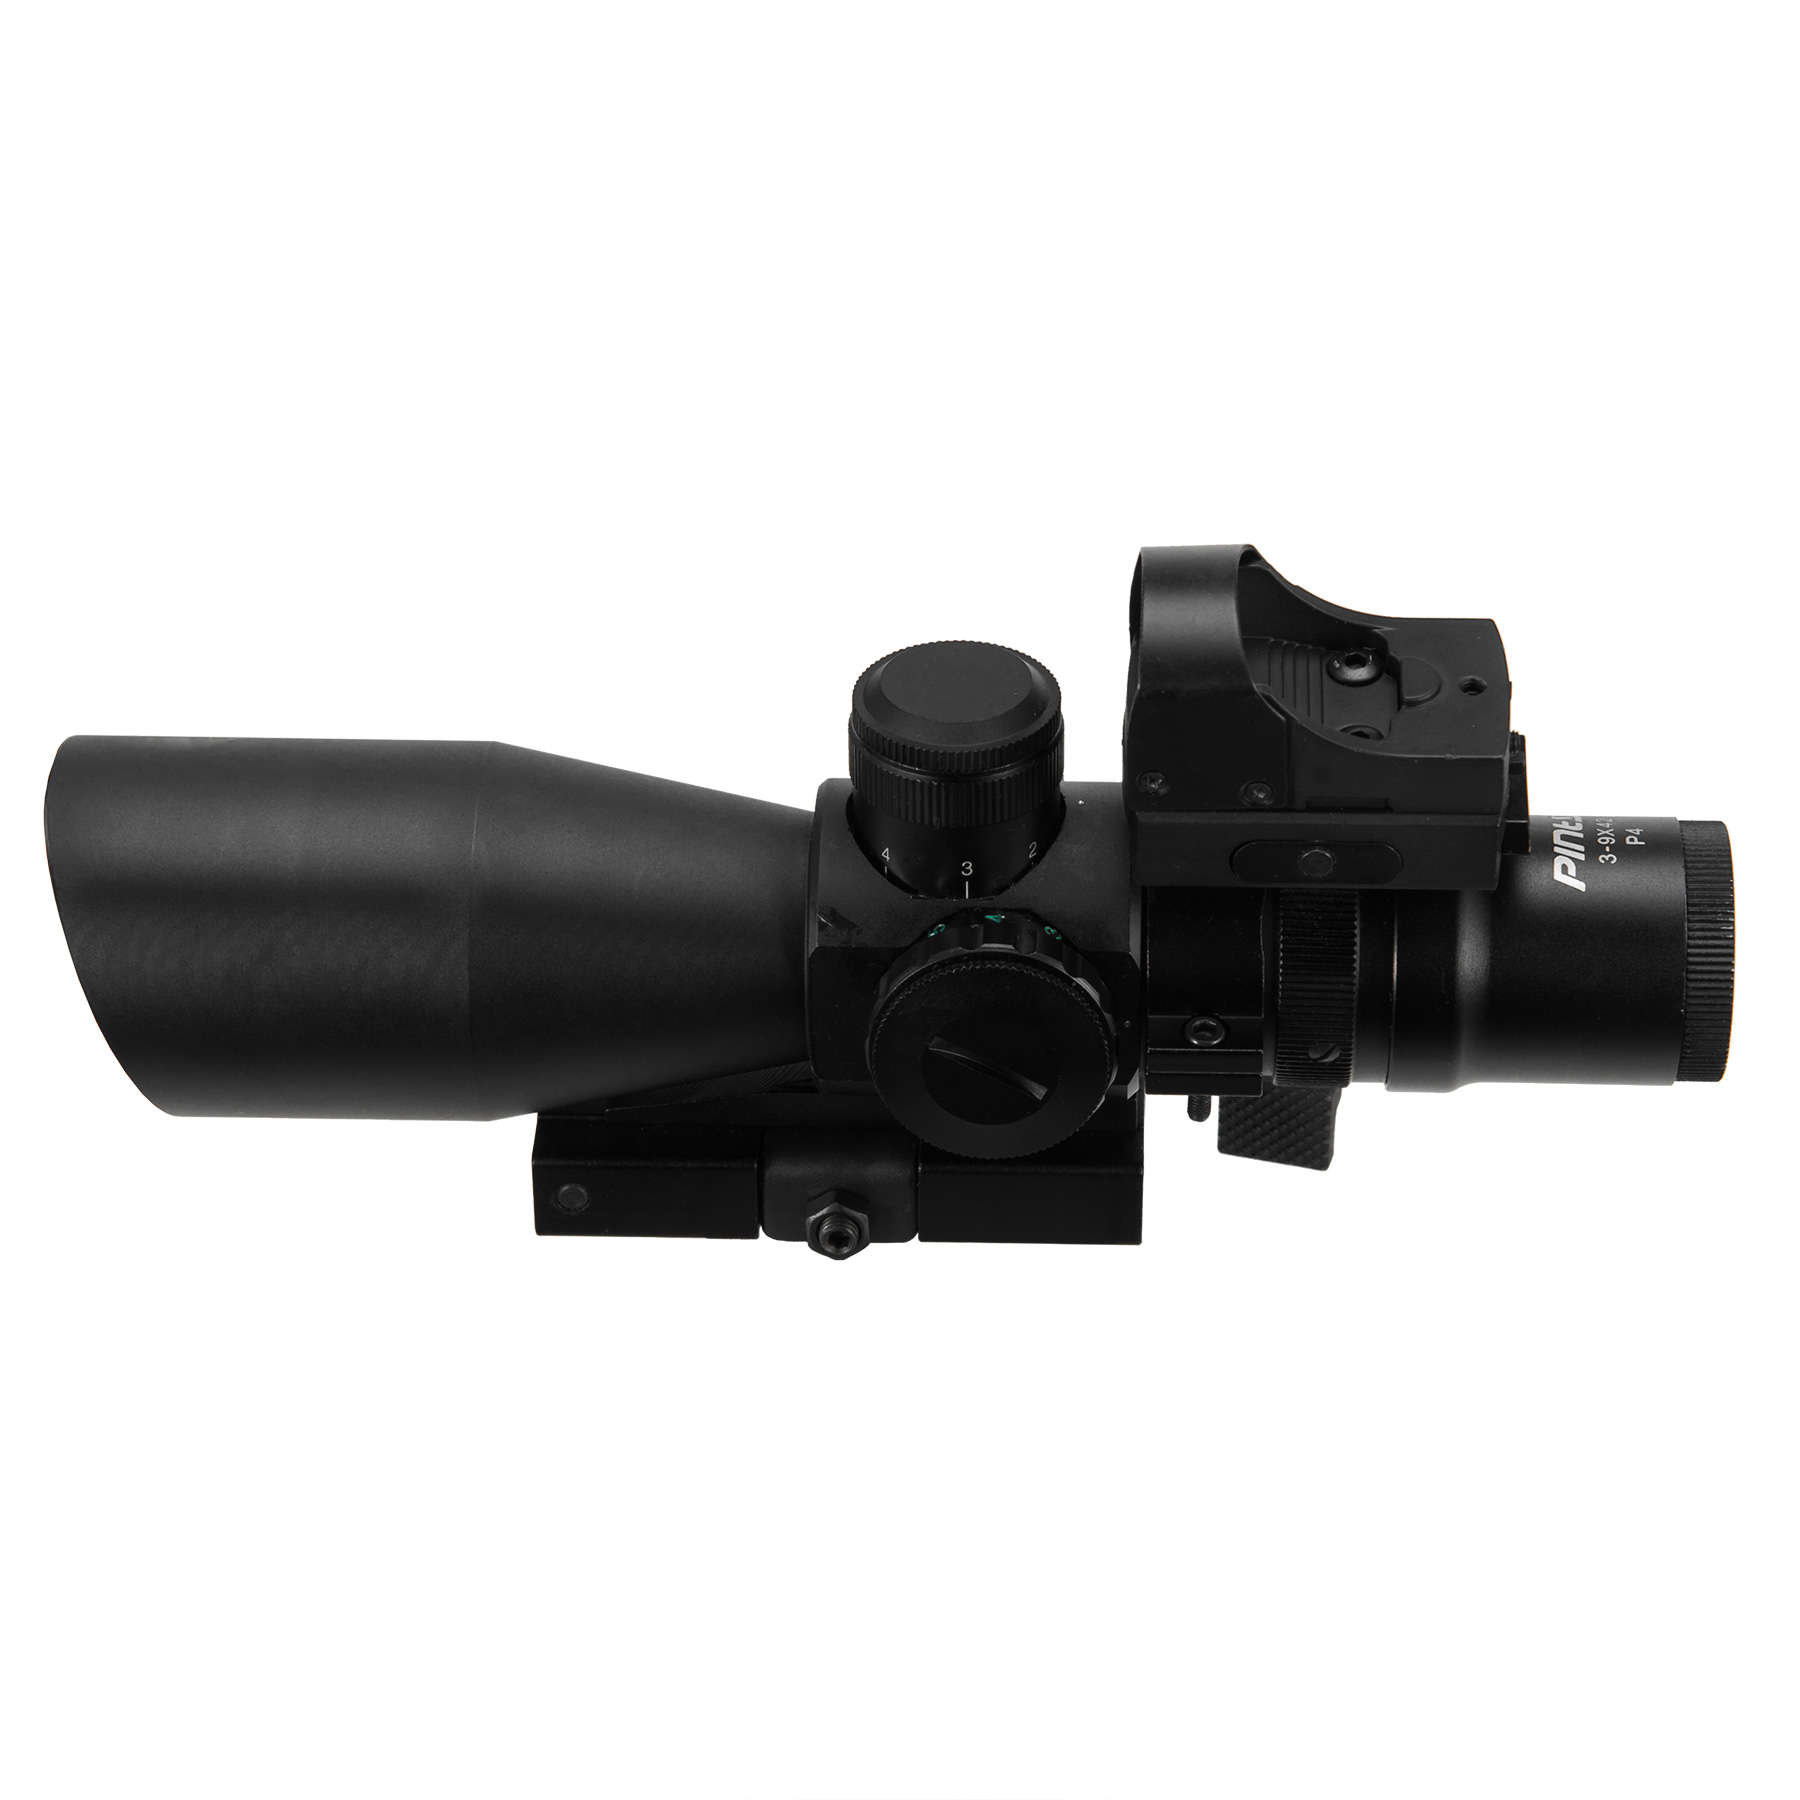 Rangefinder Mil Dot Reticle Riflescope with Red Dot Sight...